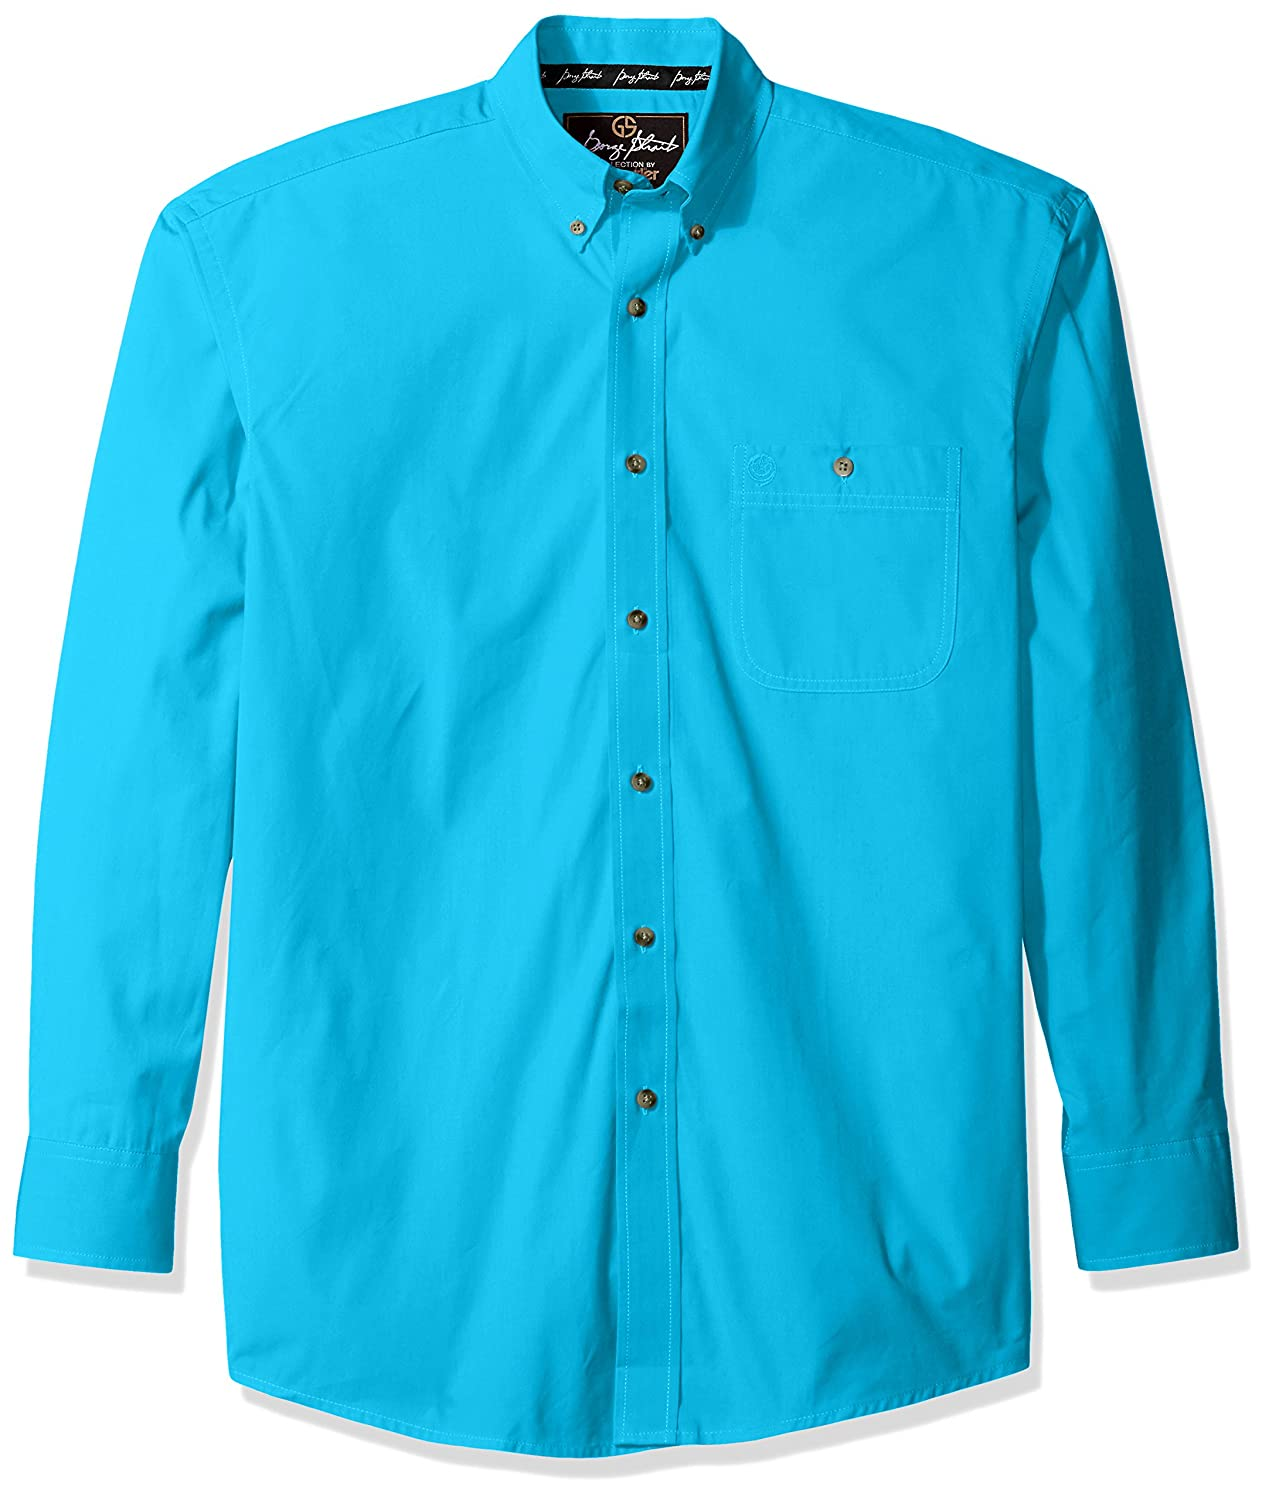 Wrangler Mens George Strait One Pocket Button Long Sleeve Woven Shirt